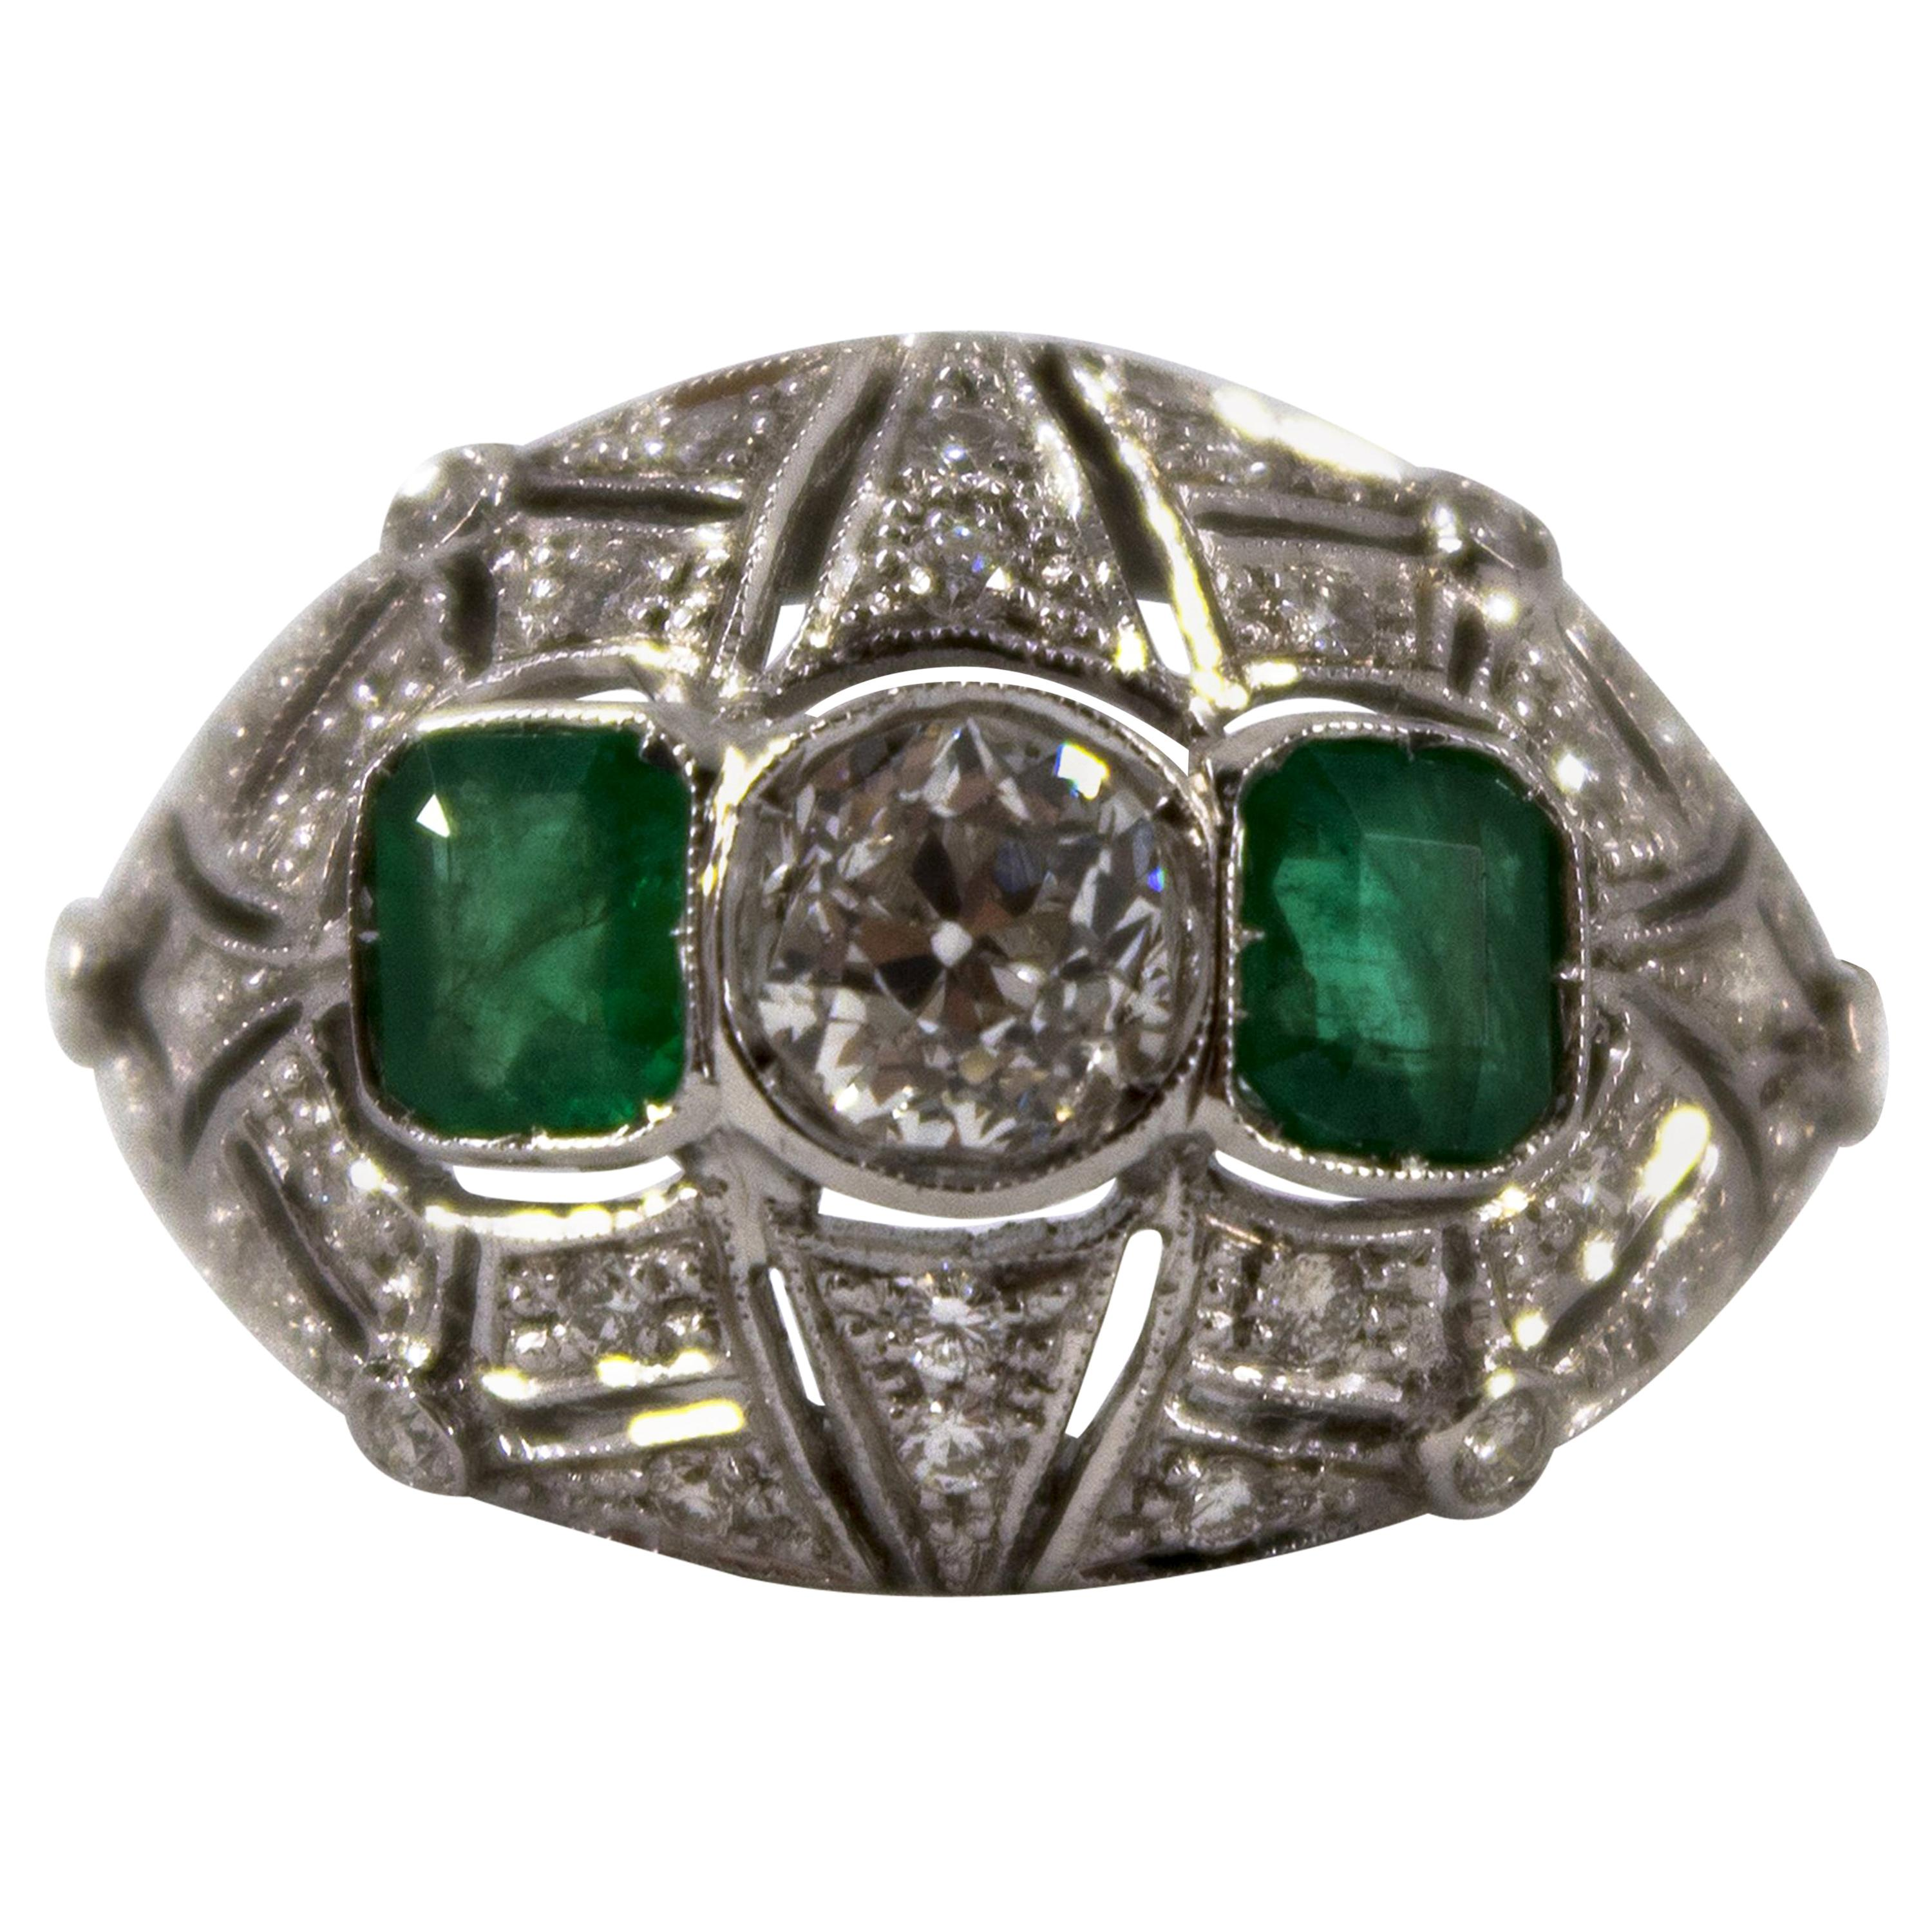 Art Deco Style 1.00 Carat Modern Cut Diamond 0.60 Carat Emerald White Gold Ring